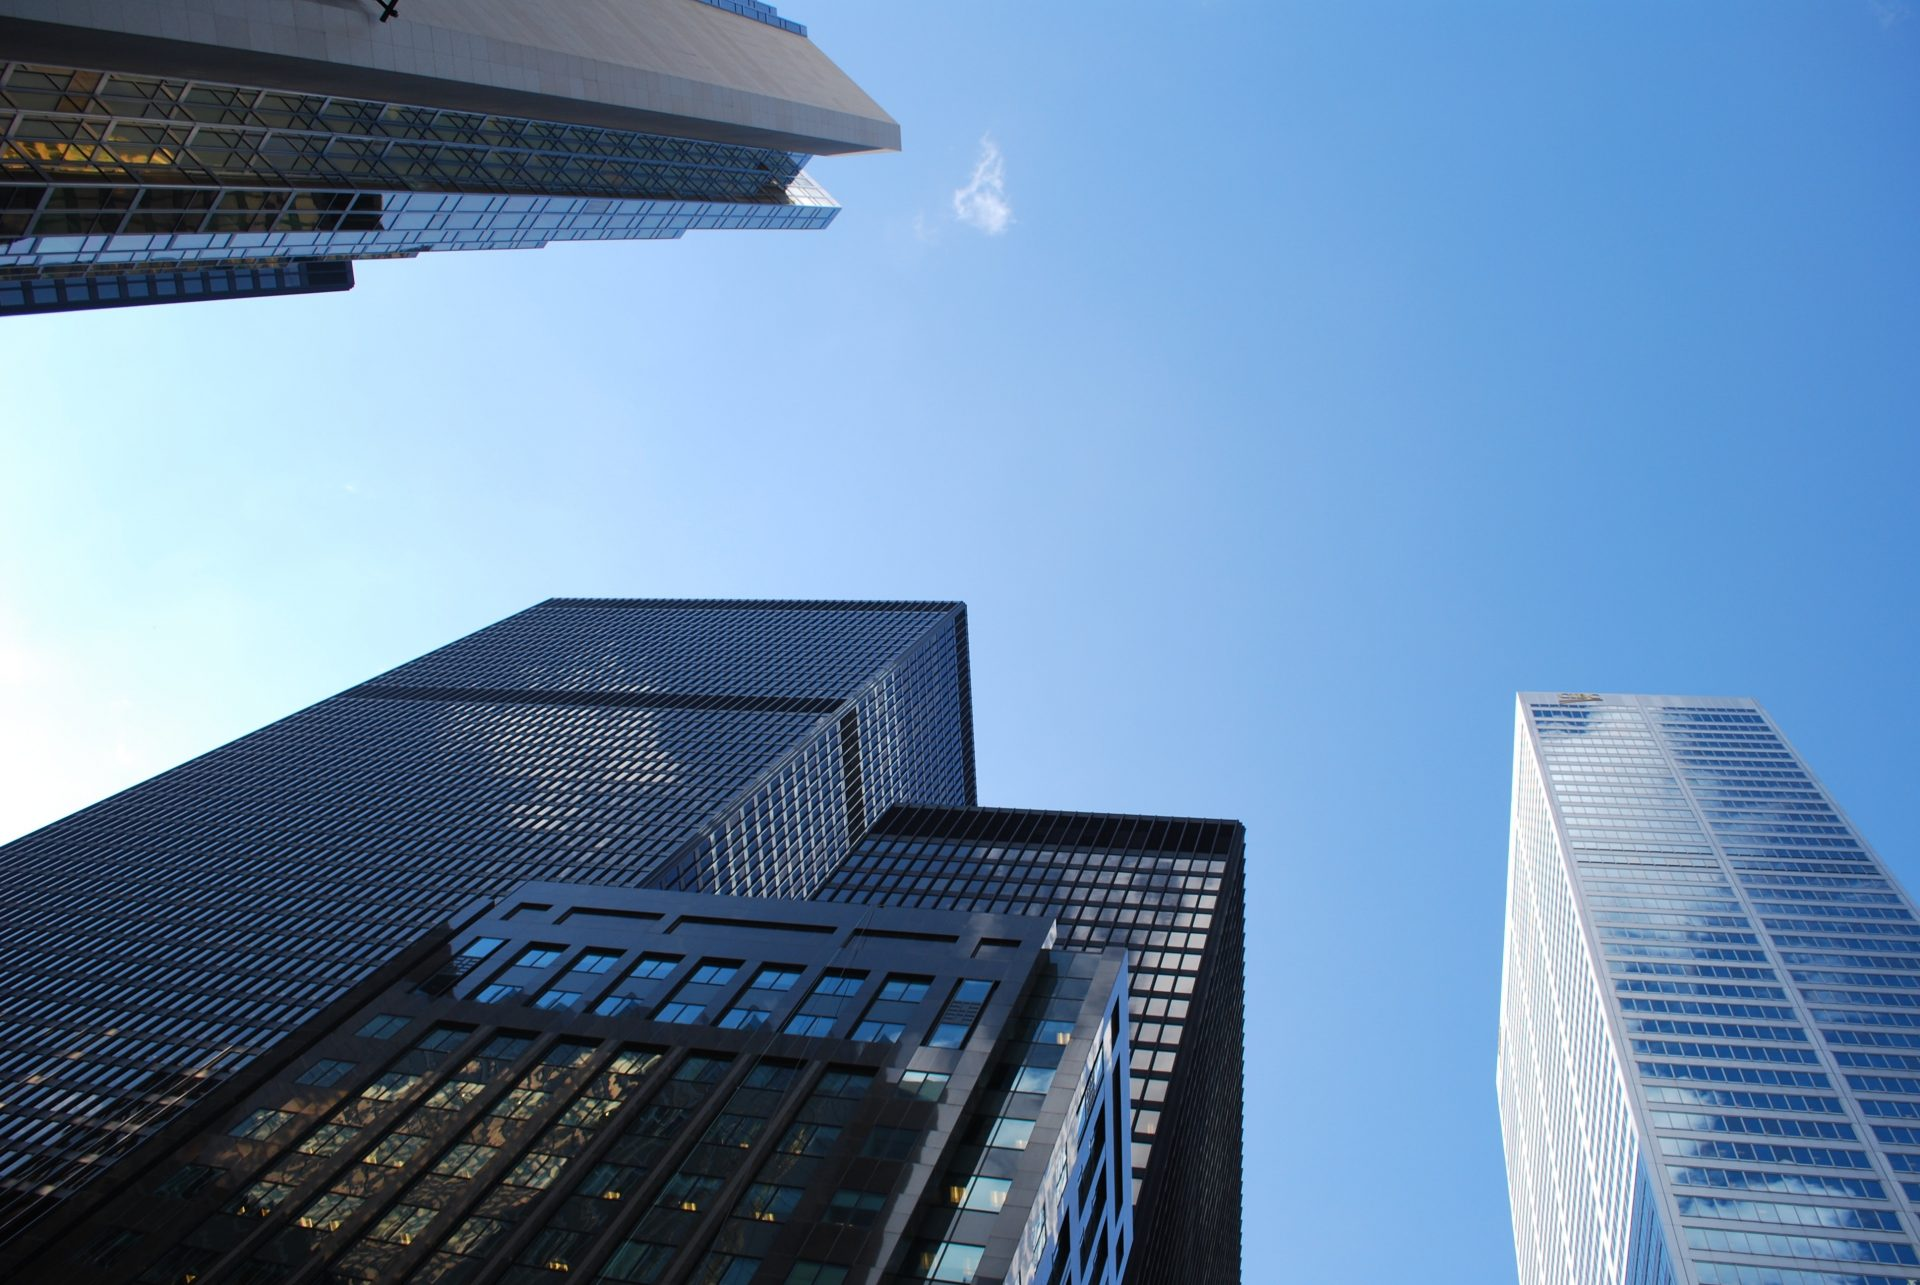 A view from below of skyscrapers